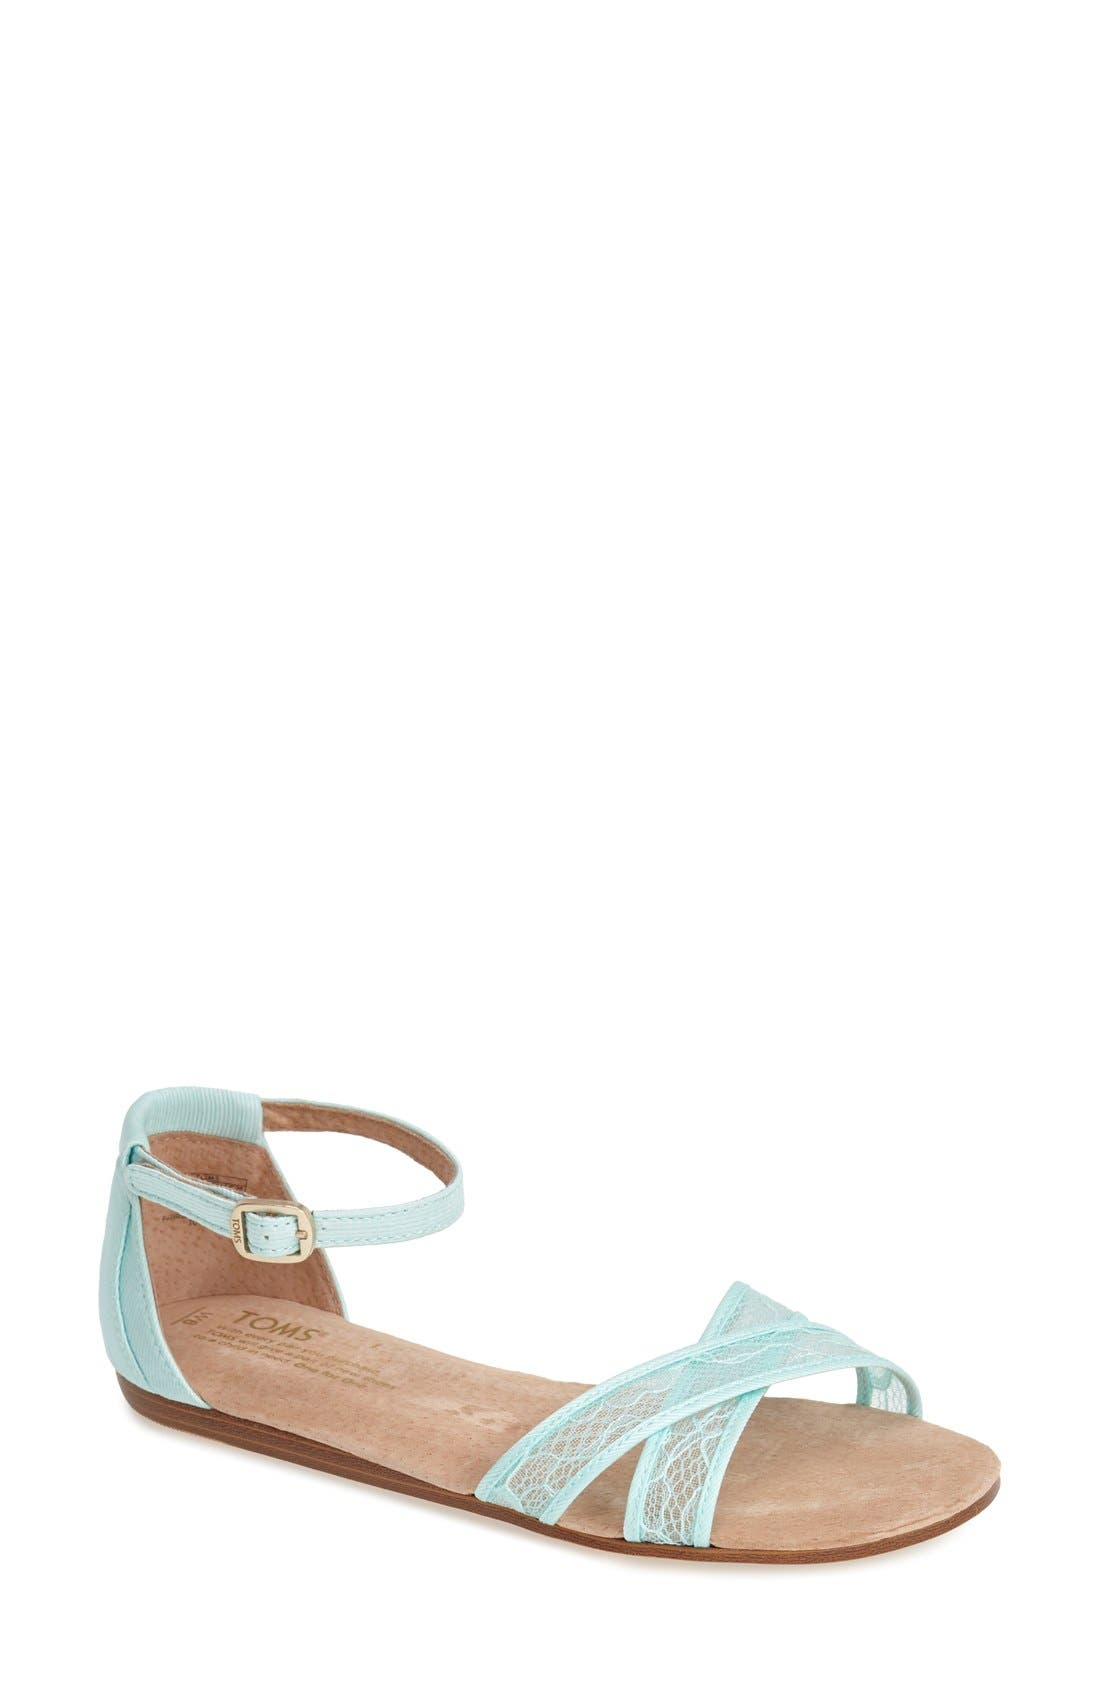 Alternate Image 1 Selected - TOMS 'Correa' Lace & Grosgrain Ribbon Ankle Strap Wedding Sandal (Women)